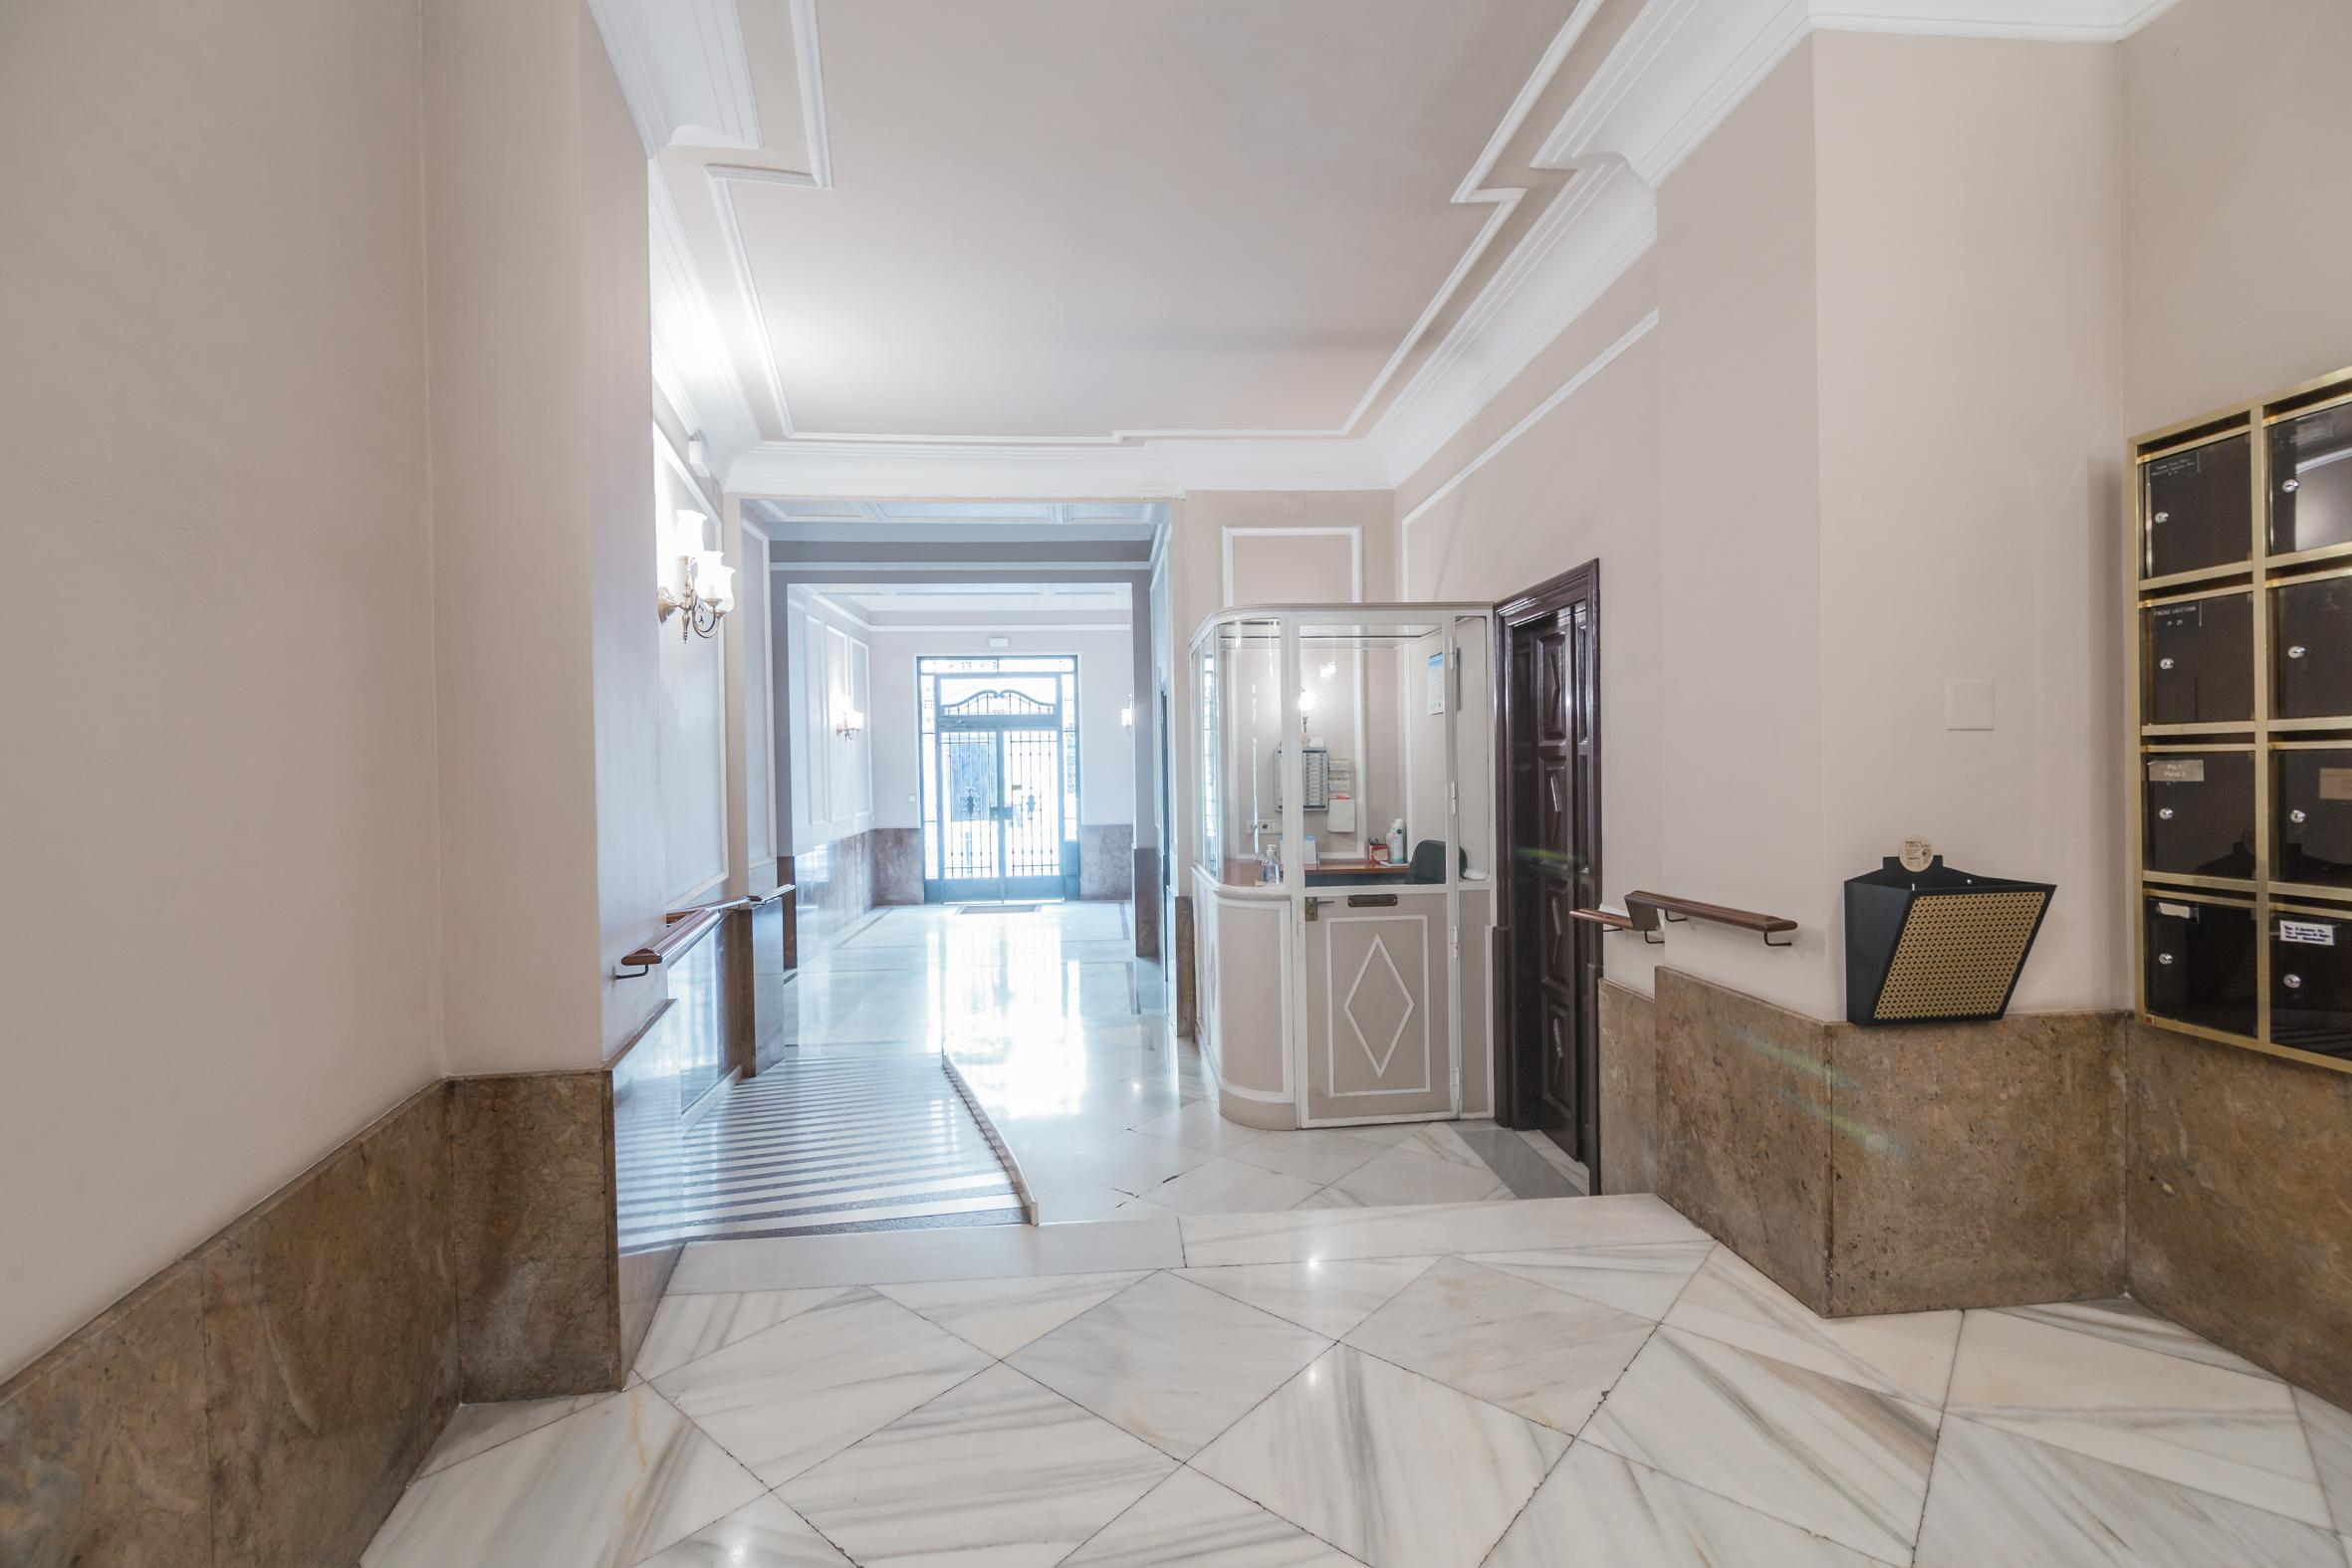 244010 Flat for sale in Ciutat Vella, Barri Gótic 25